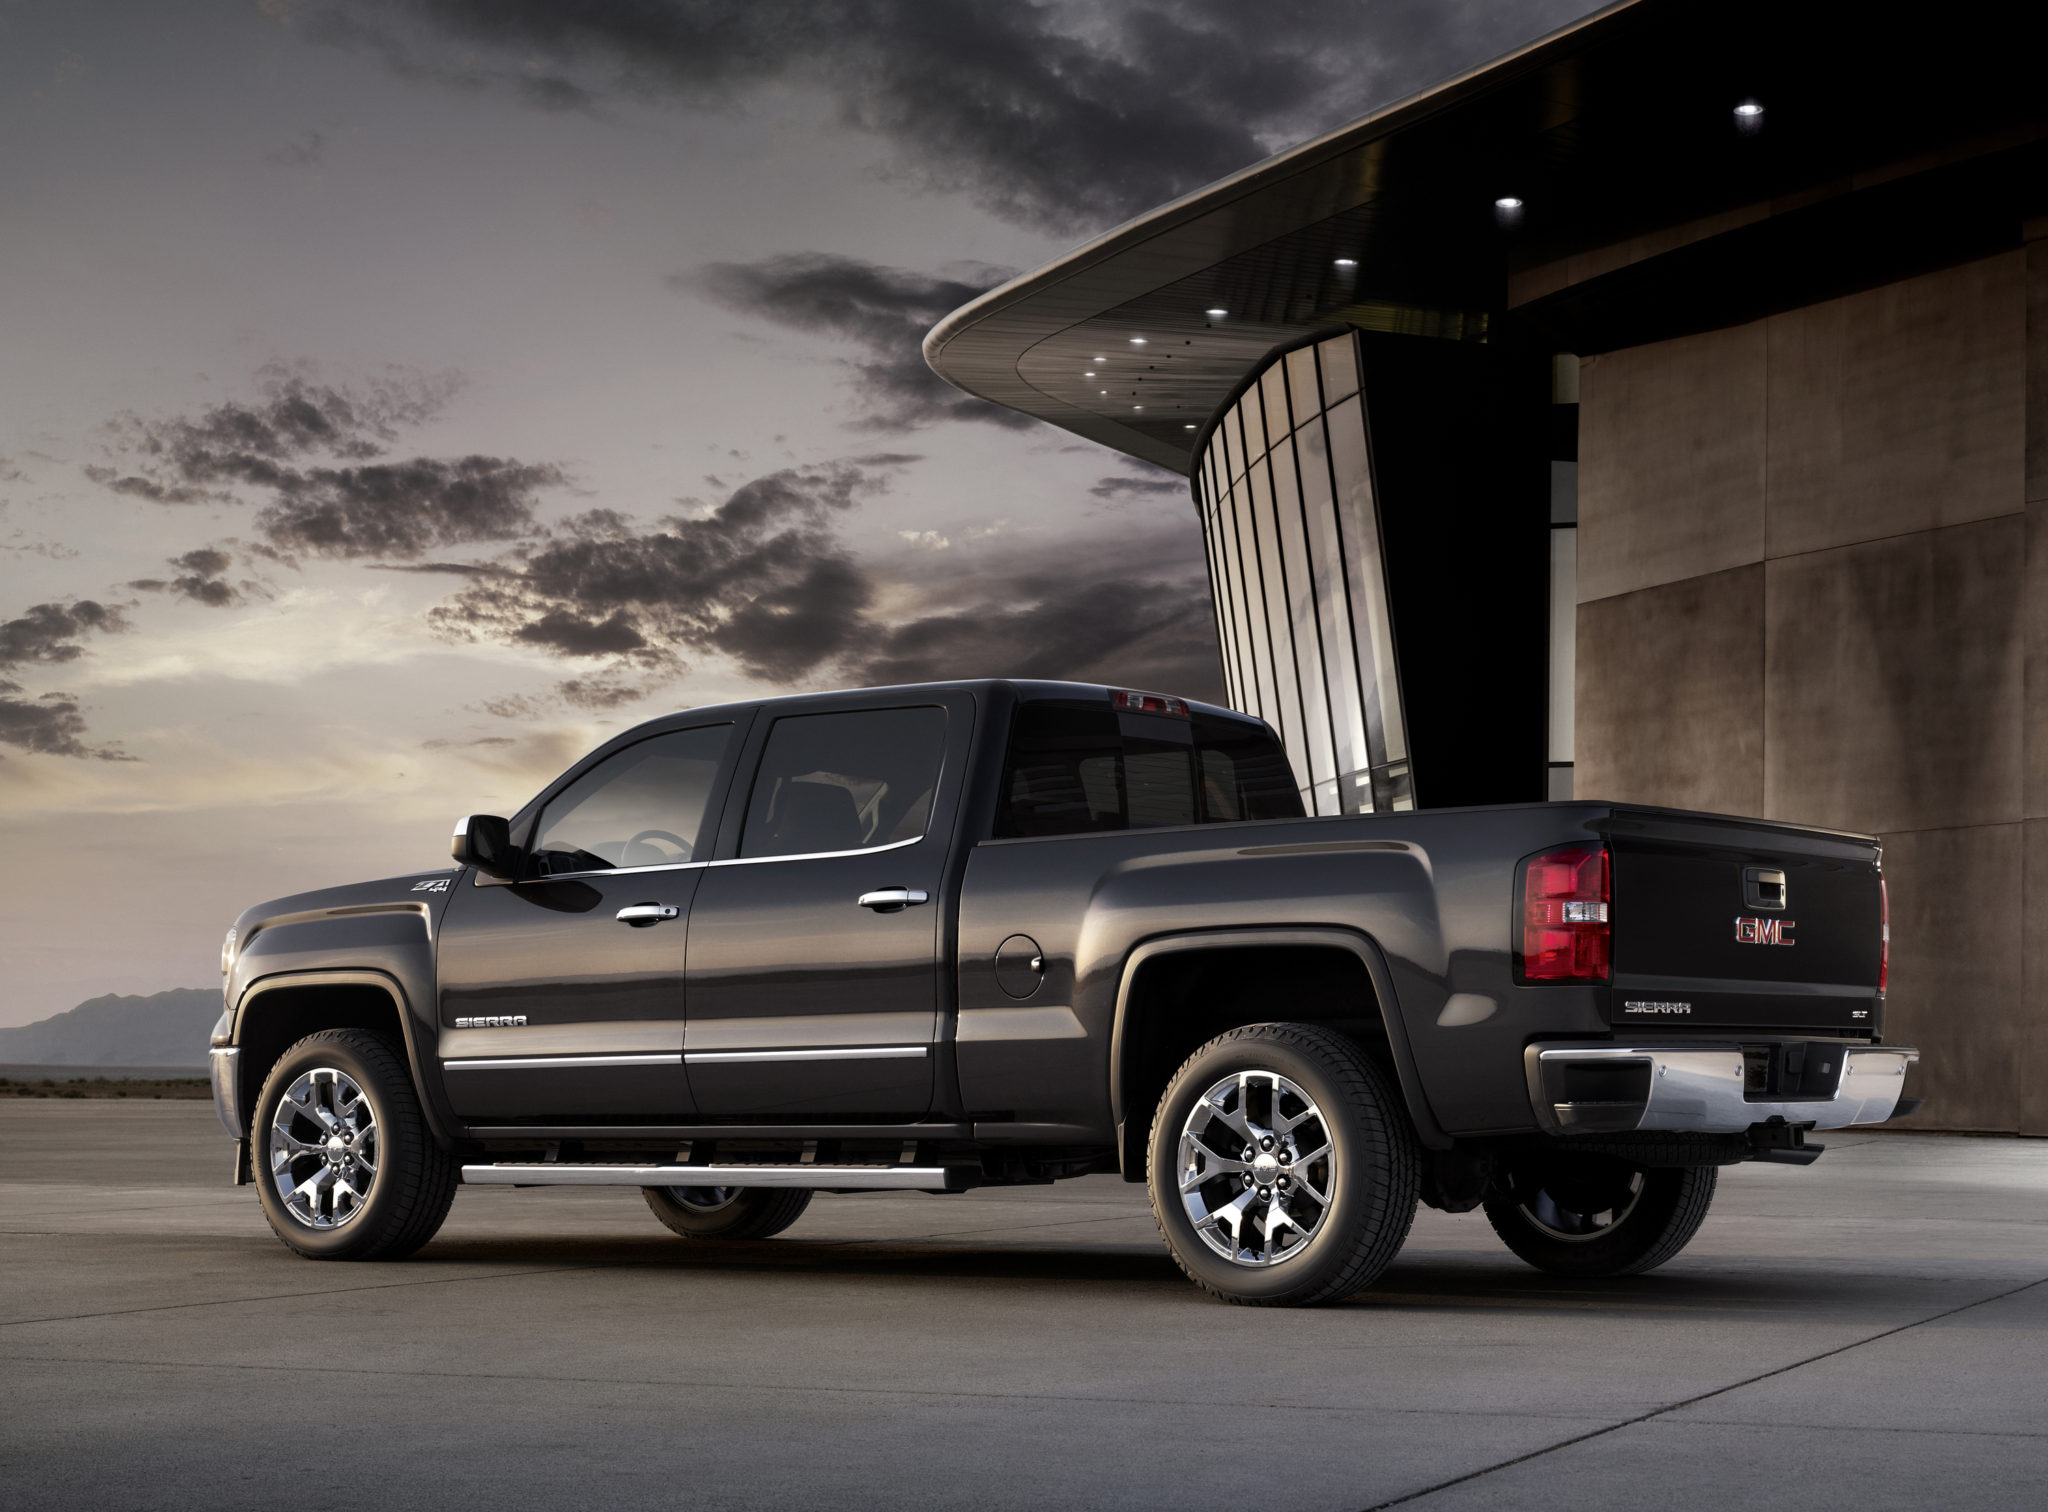 2014 GMC Sierra SLT Crew Cab in Iridium Metallic